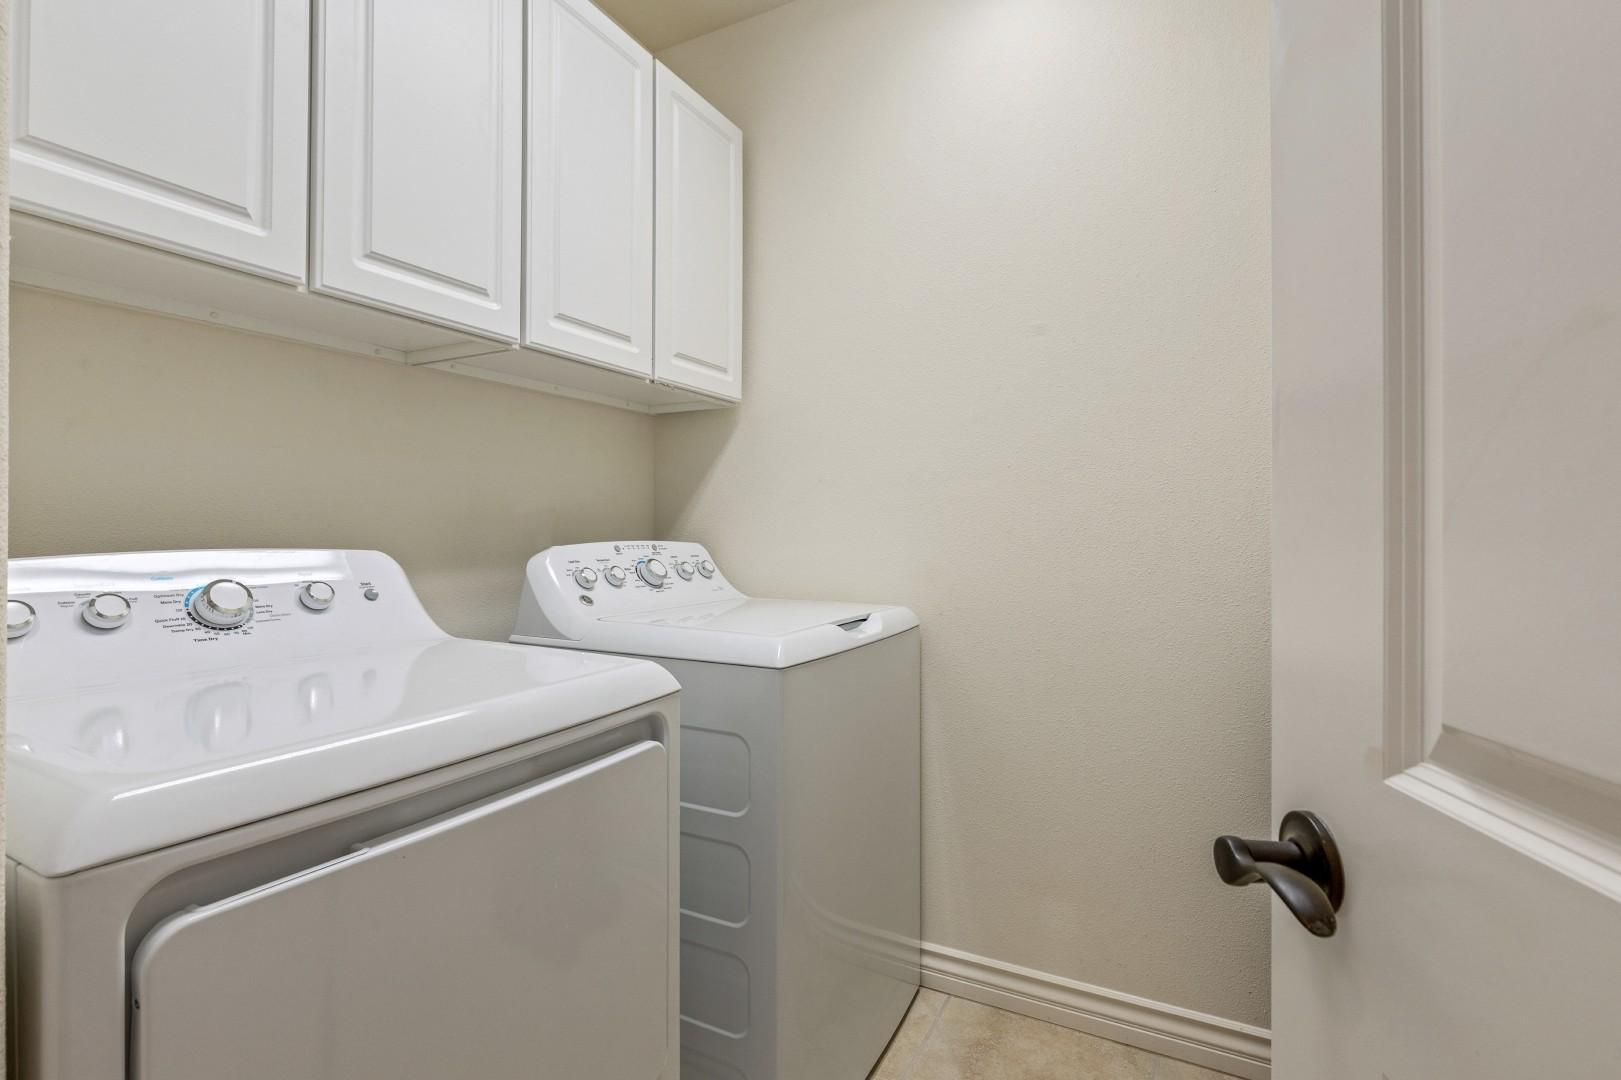 Dedicated laundry room with oversized washer and dryer and supplied laundryproducts.